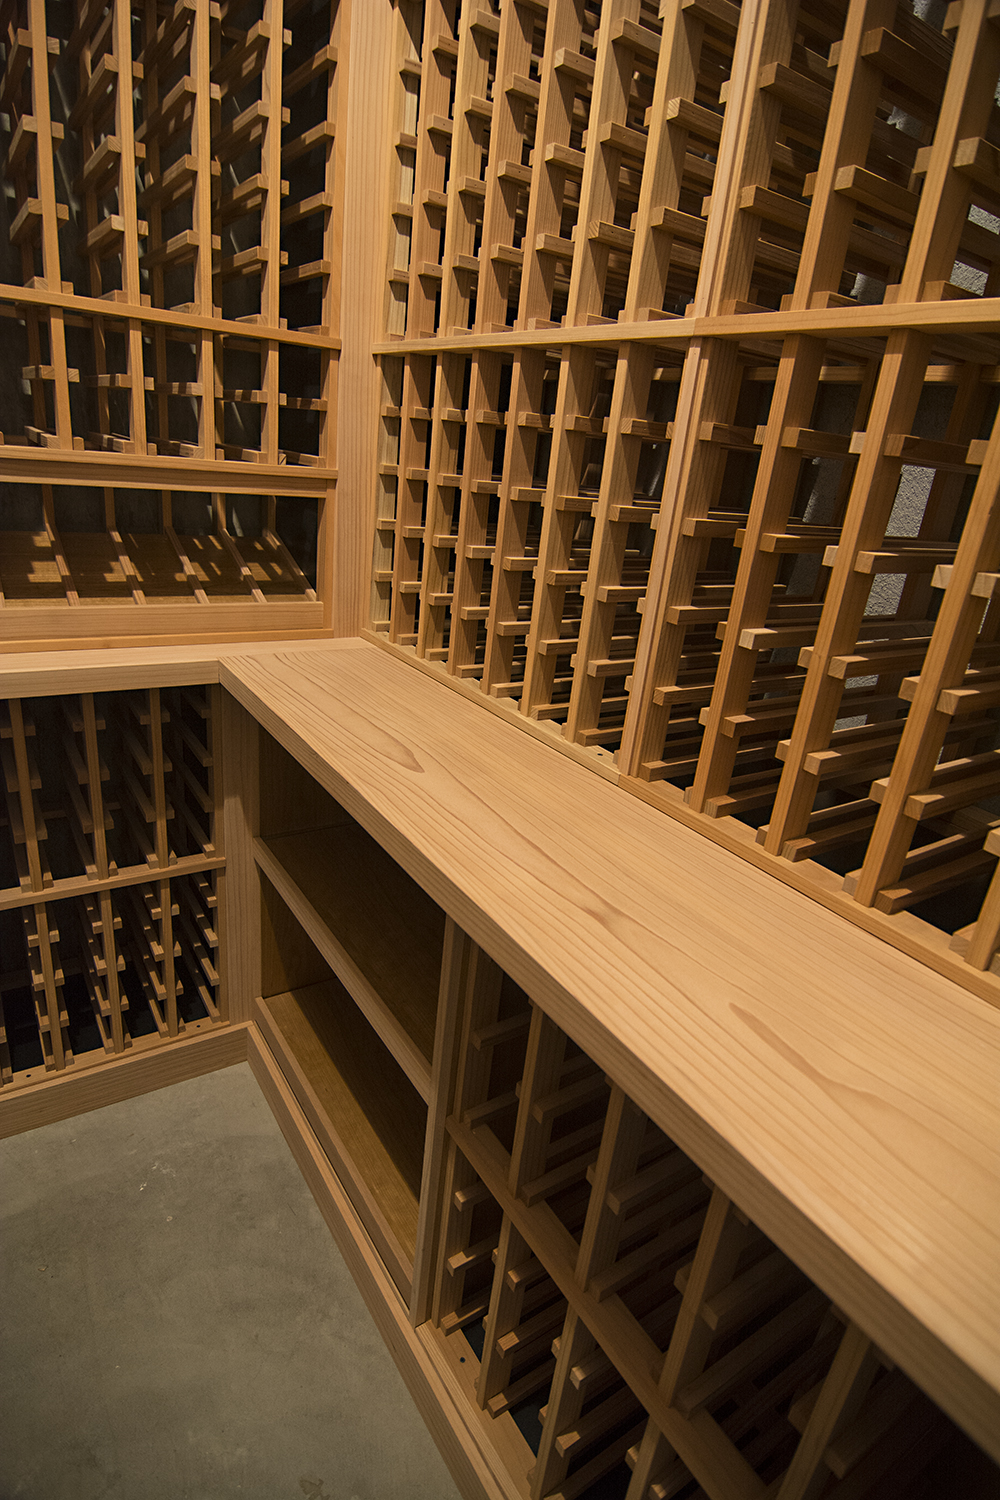 albion_cellars sf3.jpg